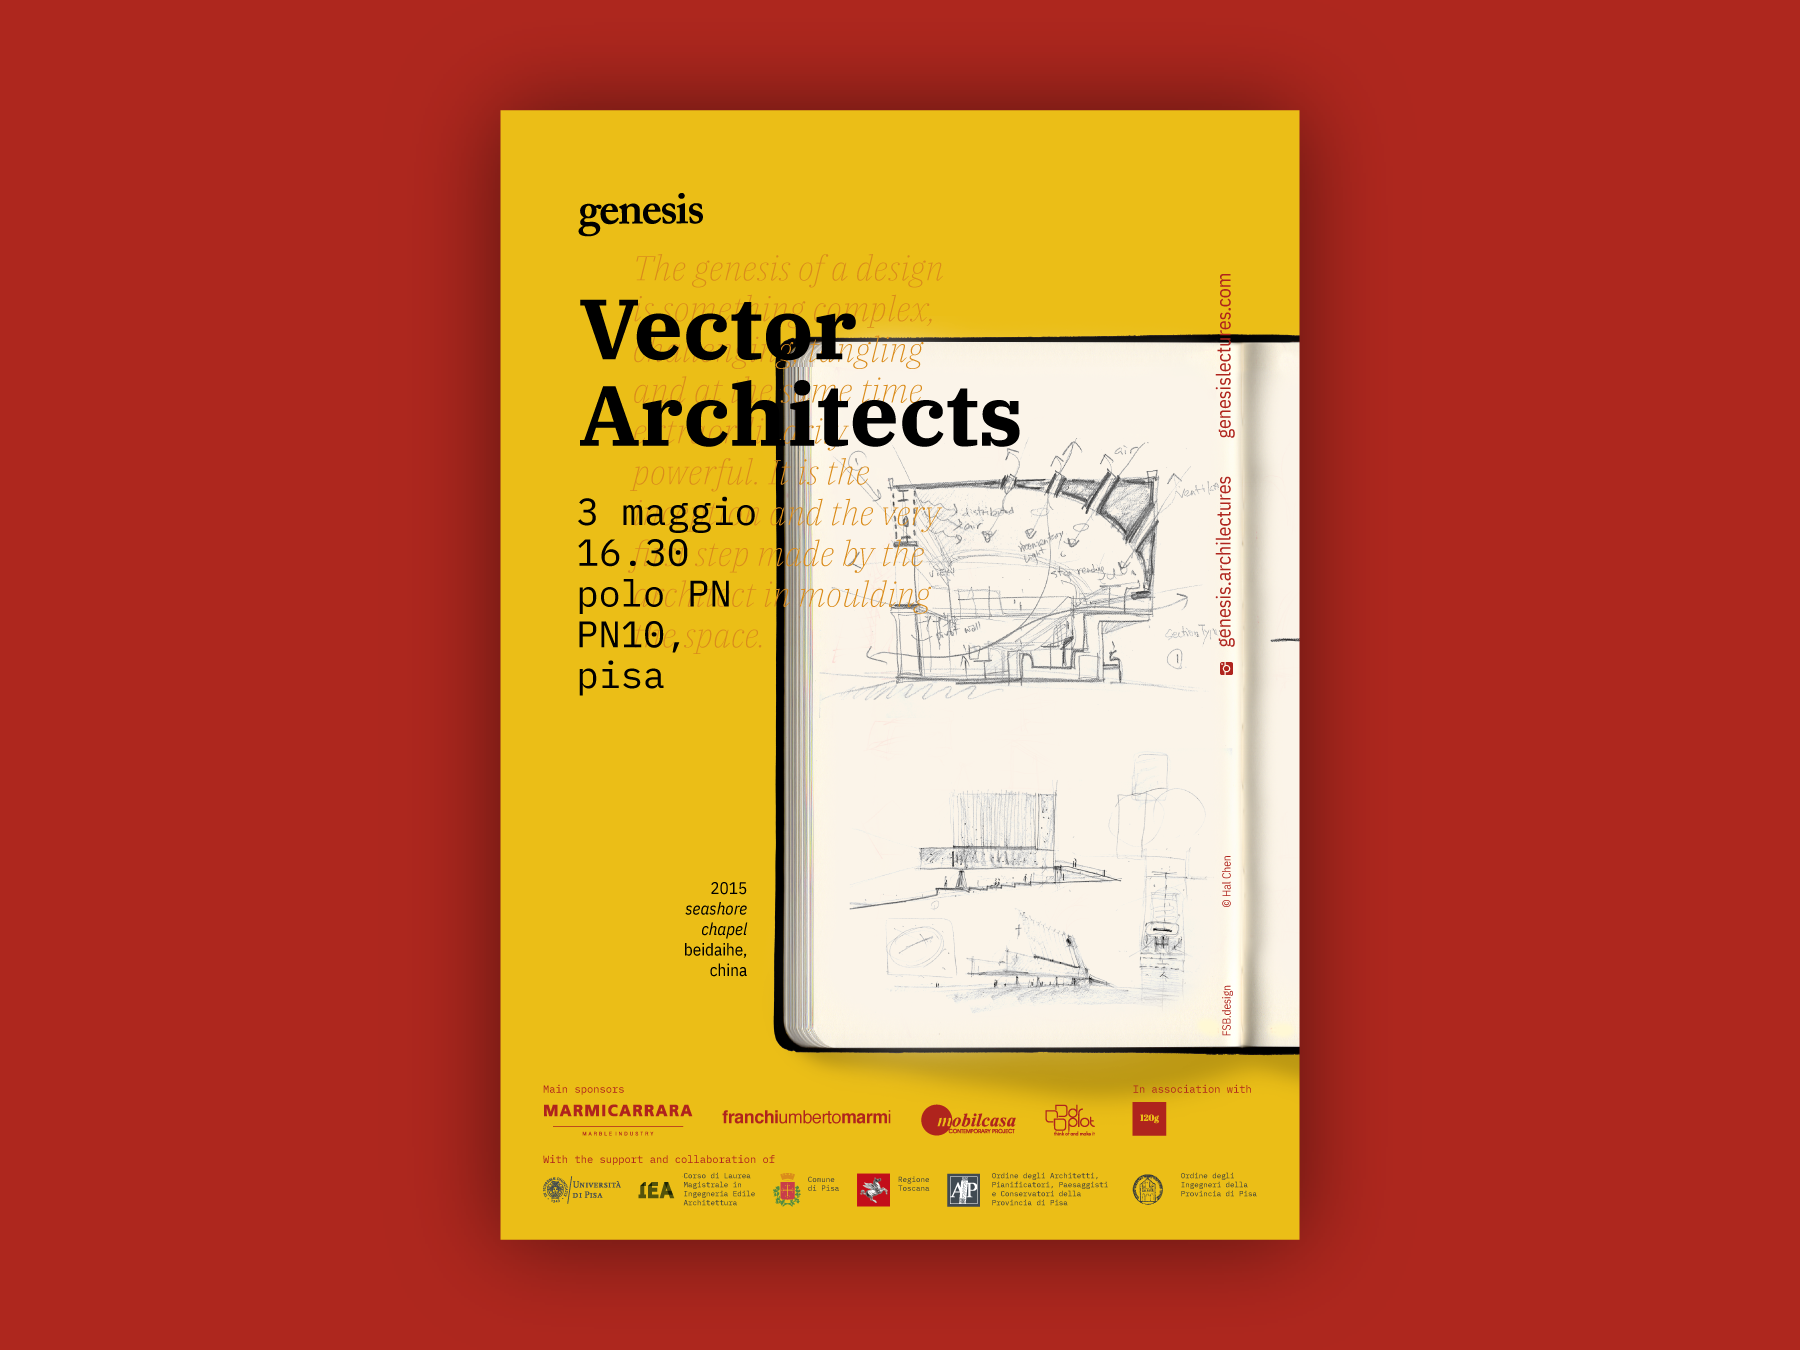 Genesis Lectures 2019 — Vector Architects